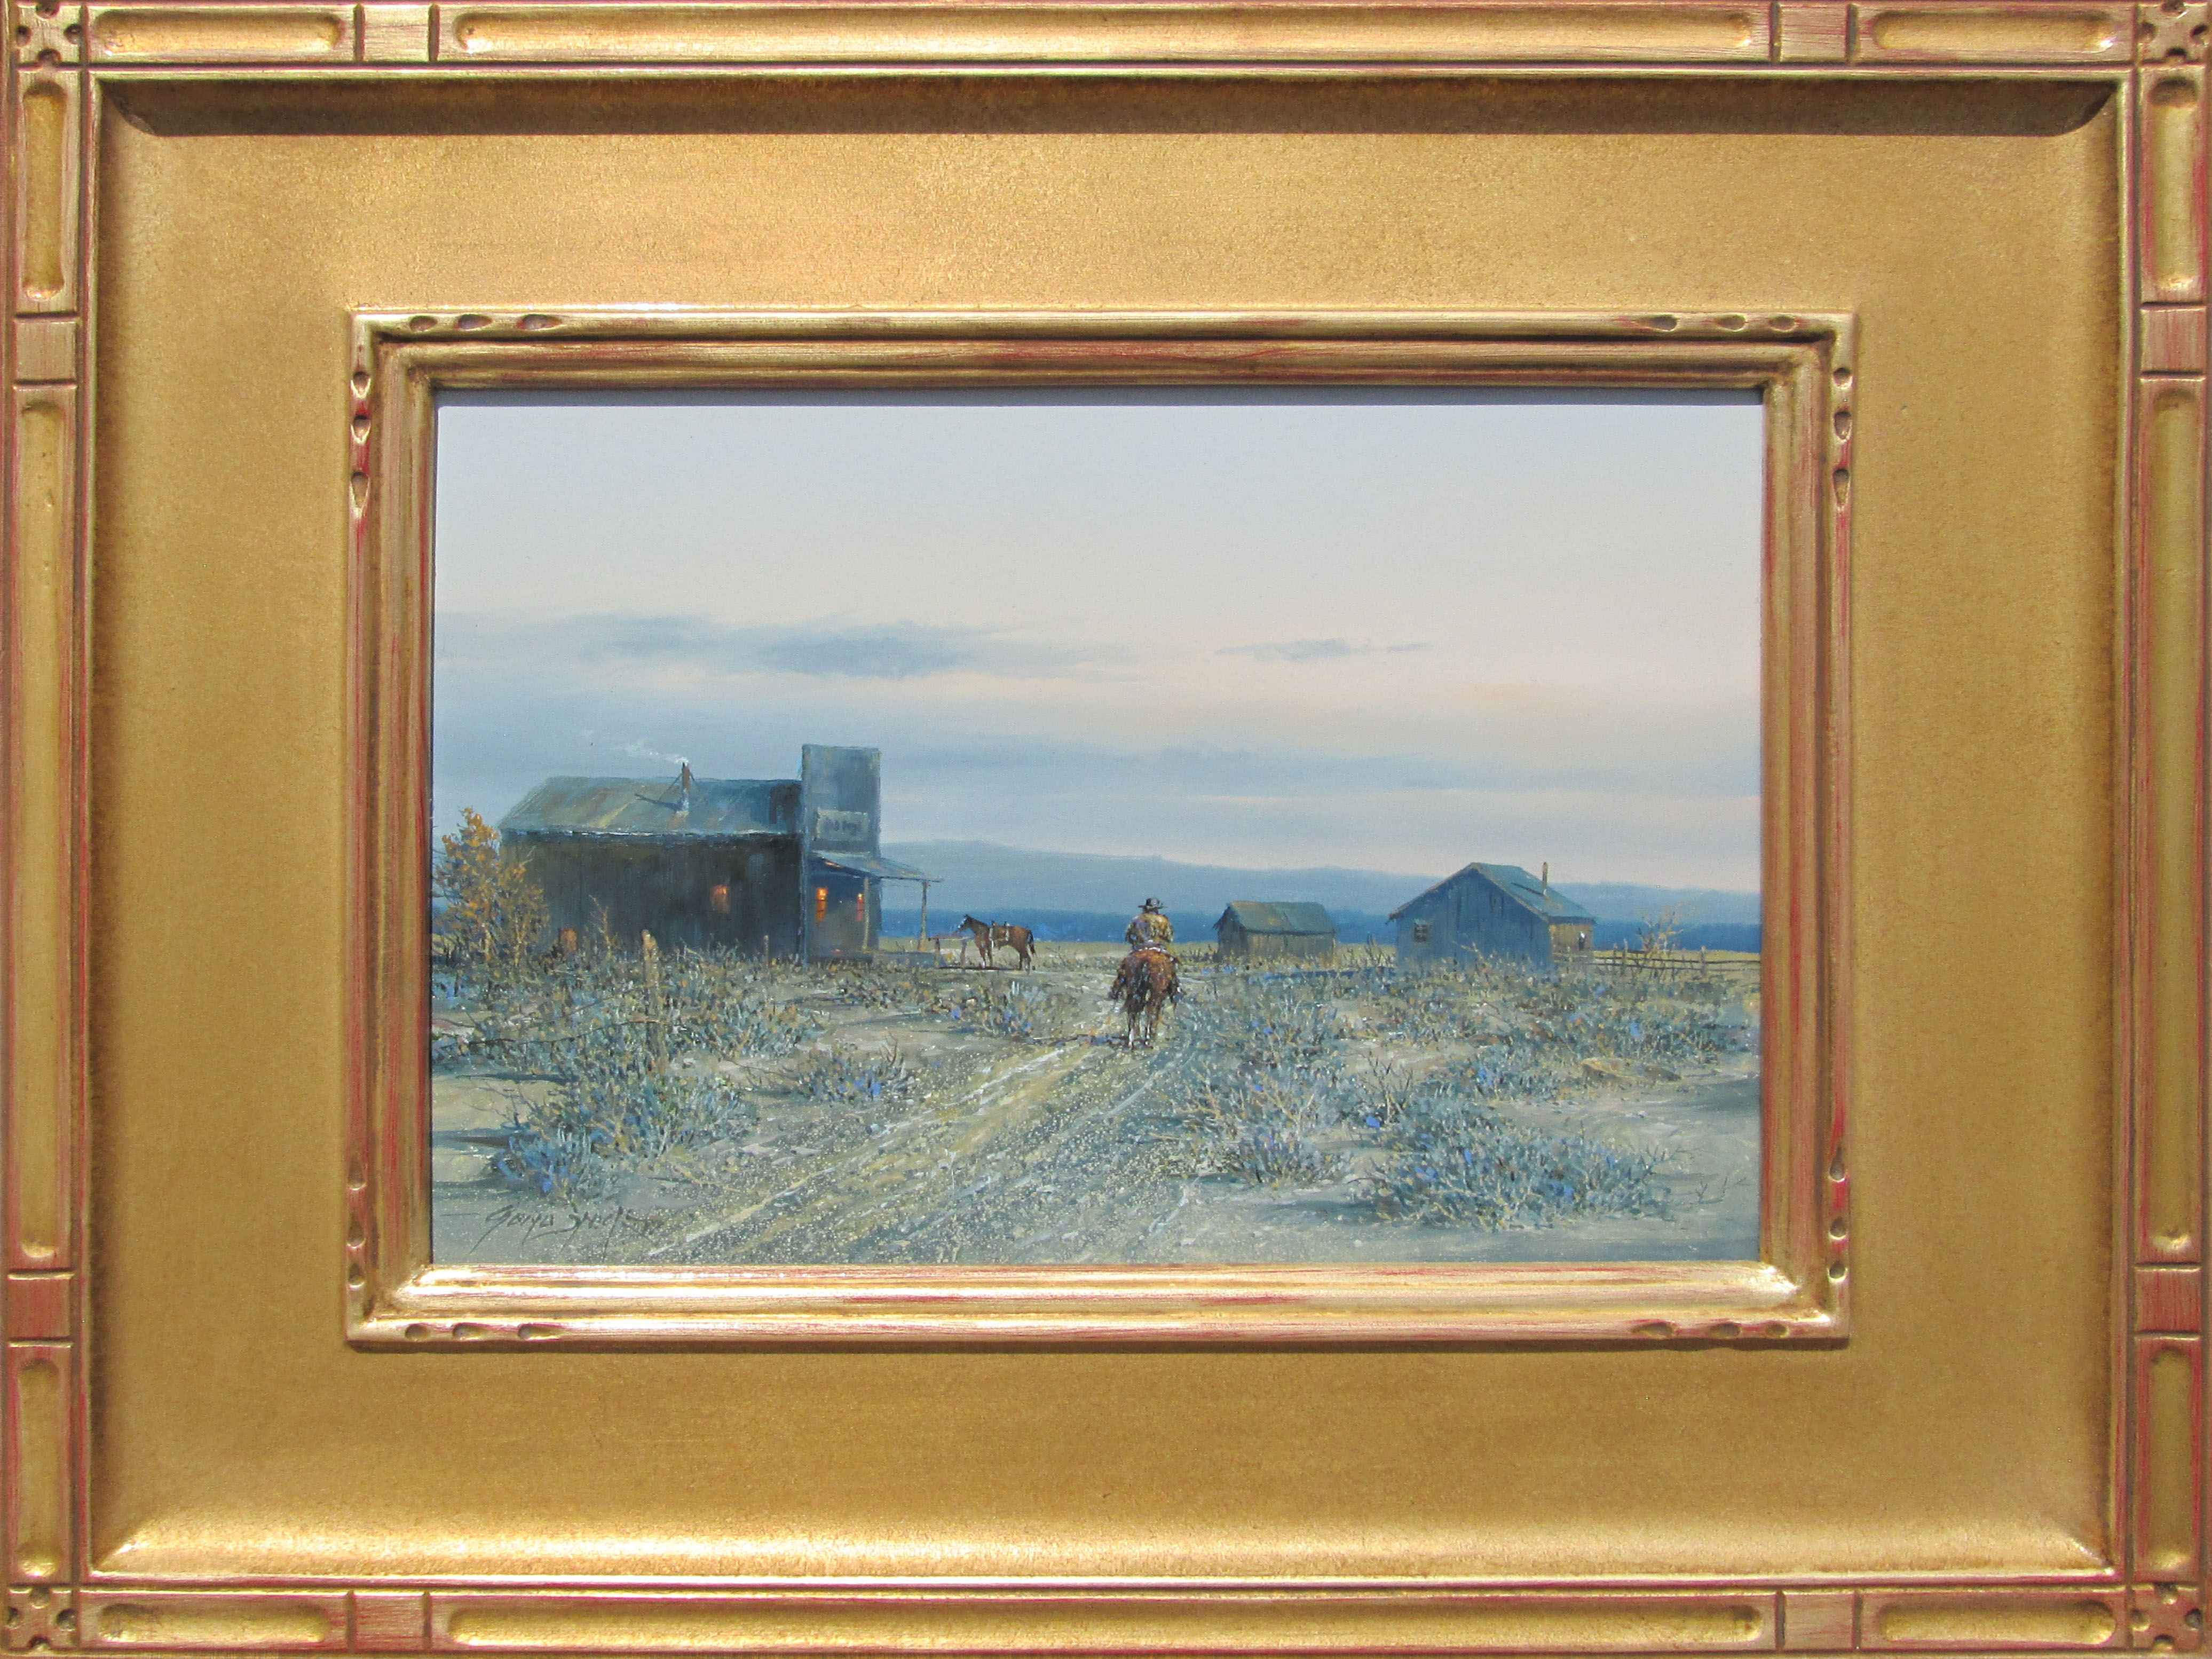 Road to Town by  Gene Speck - Masterpiece Online